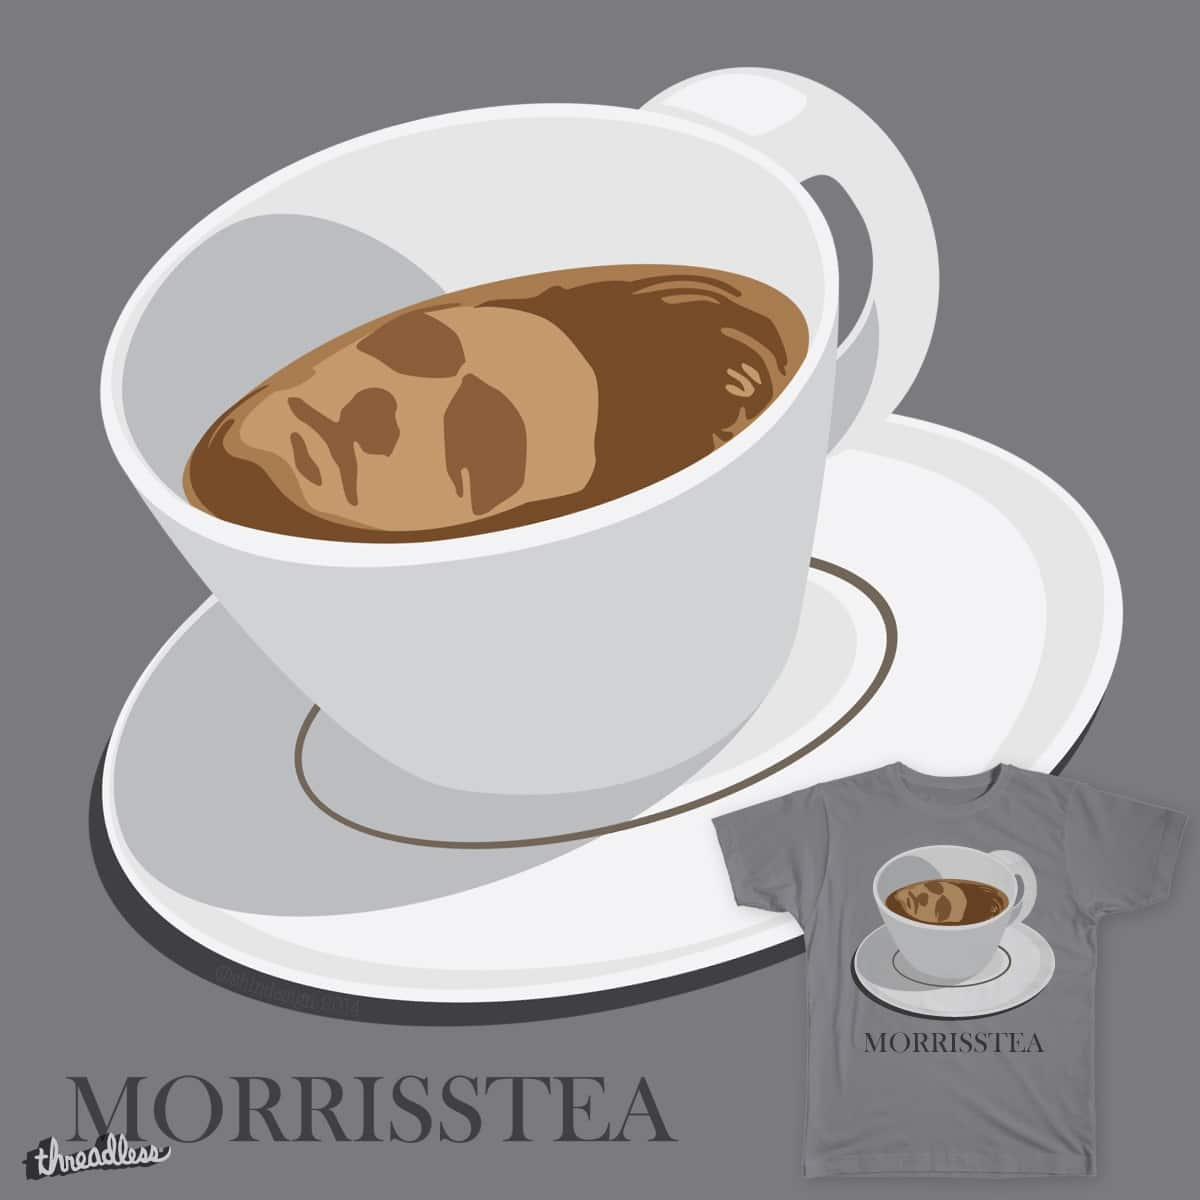 Morrisstea by Shinnbert on Threadless